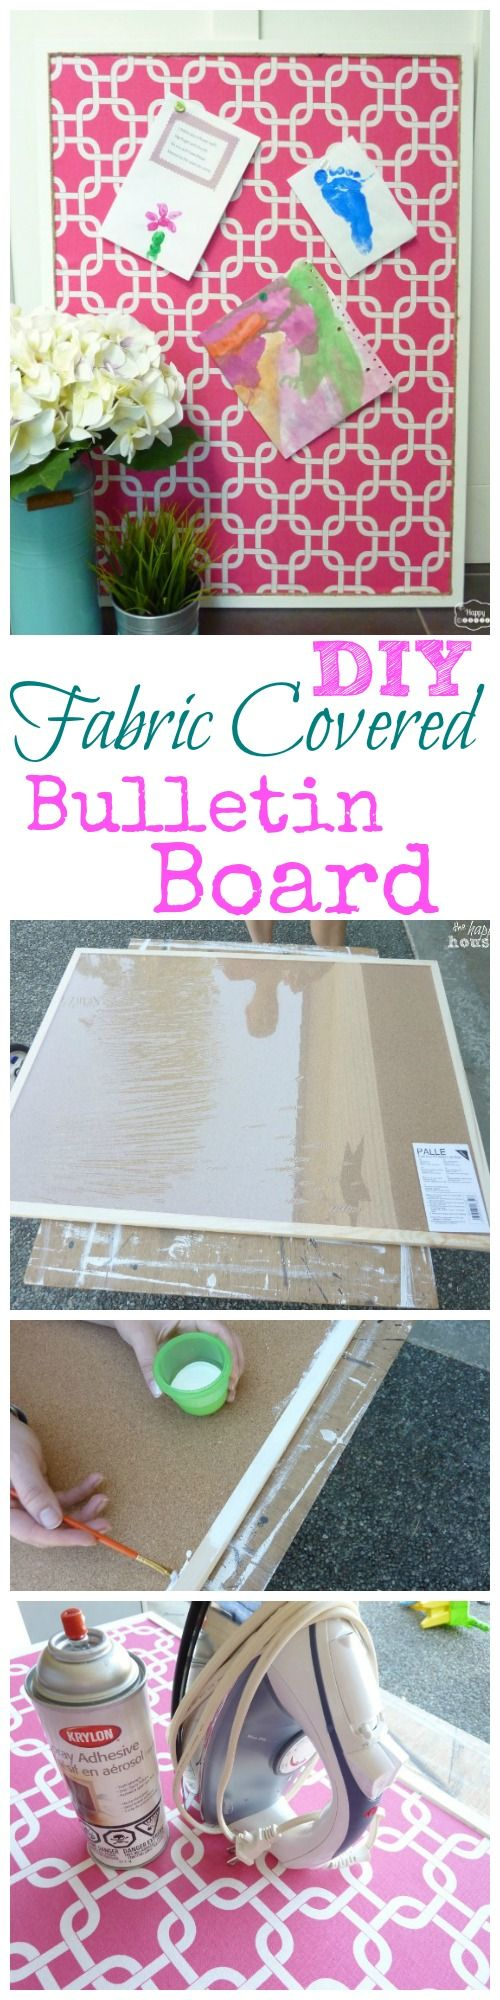 Get Organized with a DIY Fabric Covered Bulletin Board how to at The Happy Housie